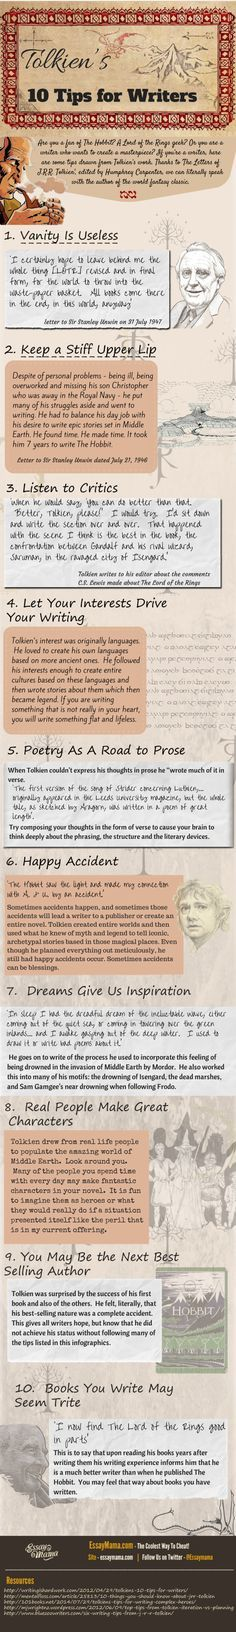 #writing J.R.R. Tolkien's Writing Tips (Infographic)